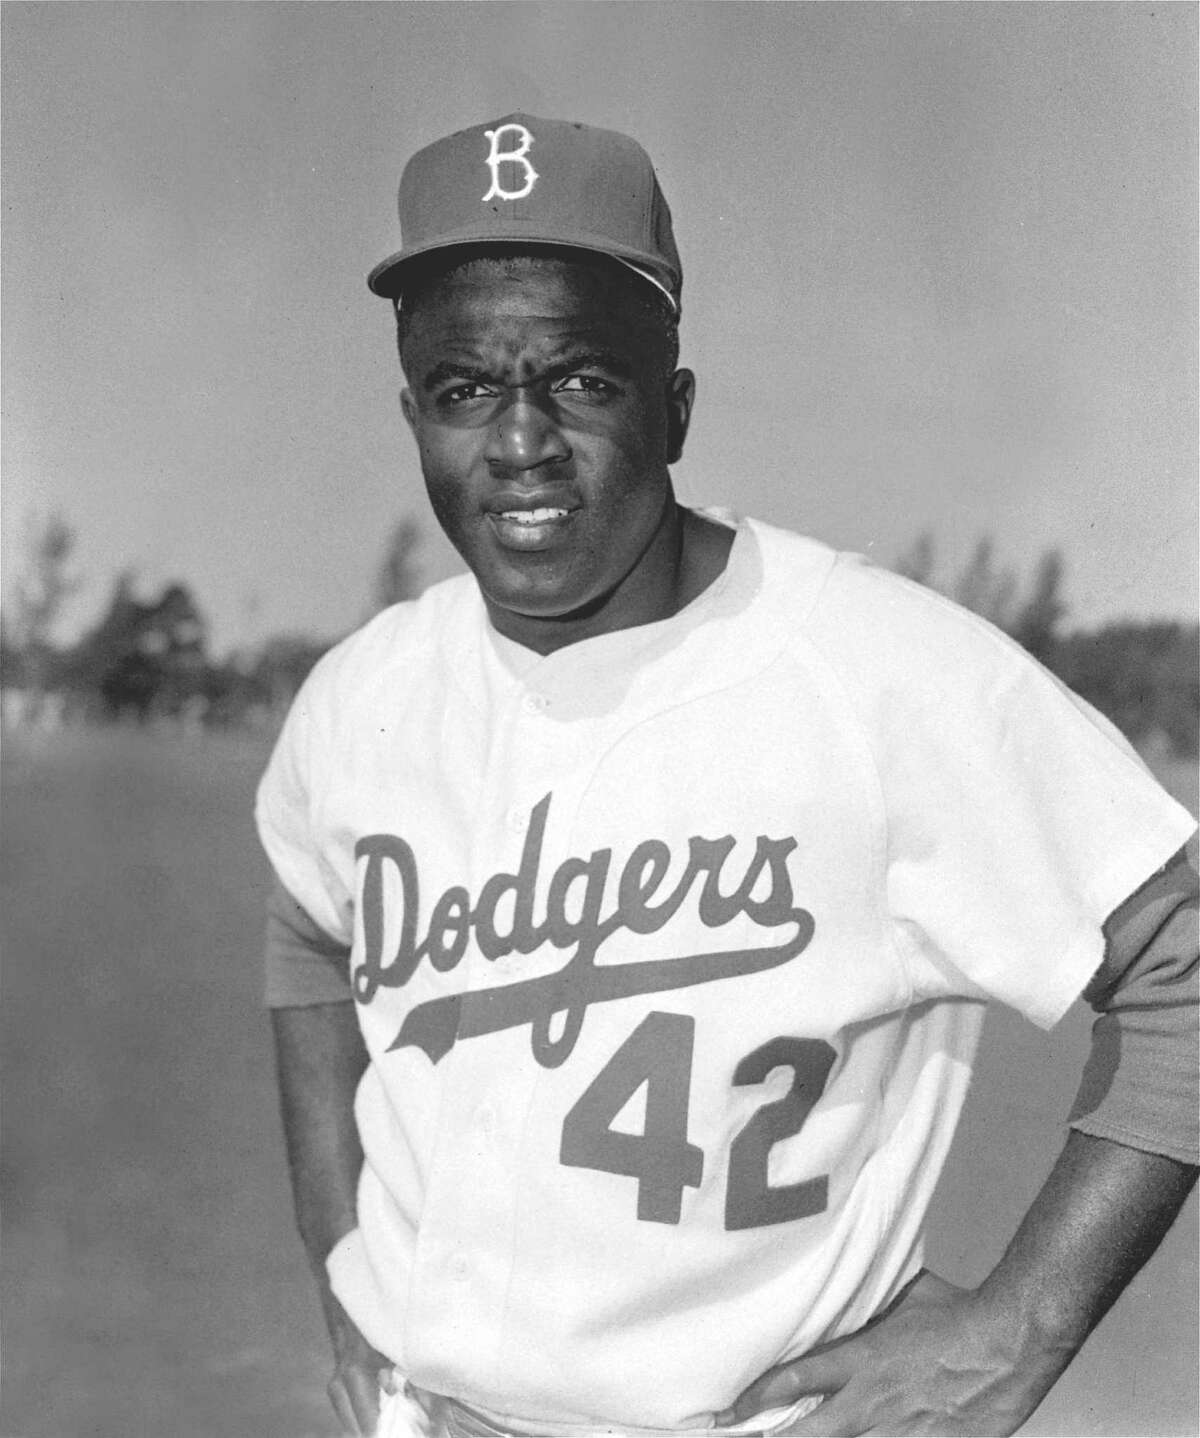 Jackie Robinson, former Brooklyn Dodger infielder, is shown in this March, 1956 file photo. Robinson will be nominated for the Congressional Gold Medal in recognition of his achievements as the first black player in Major League Baseball, the Boston Red Sox said. (AP Photo, File) HOUCHRON CAPTION (06/26/2004): ROBINSON.